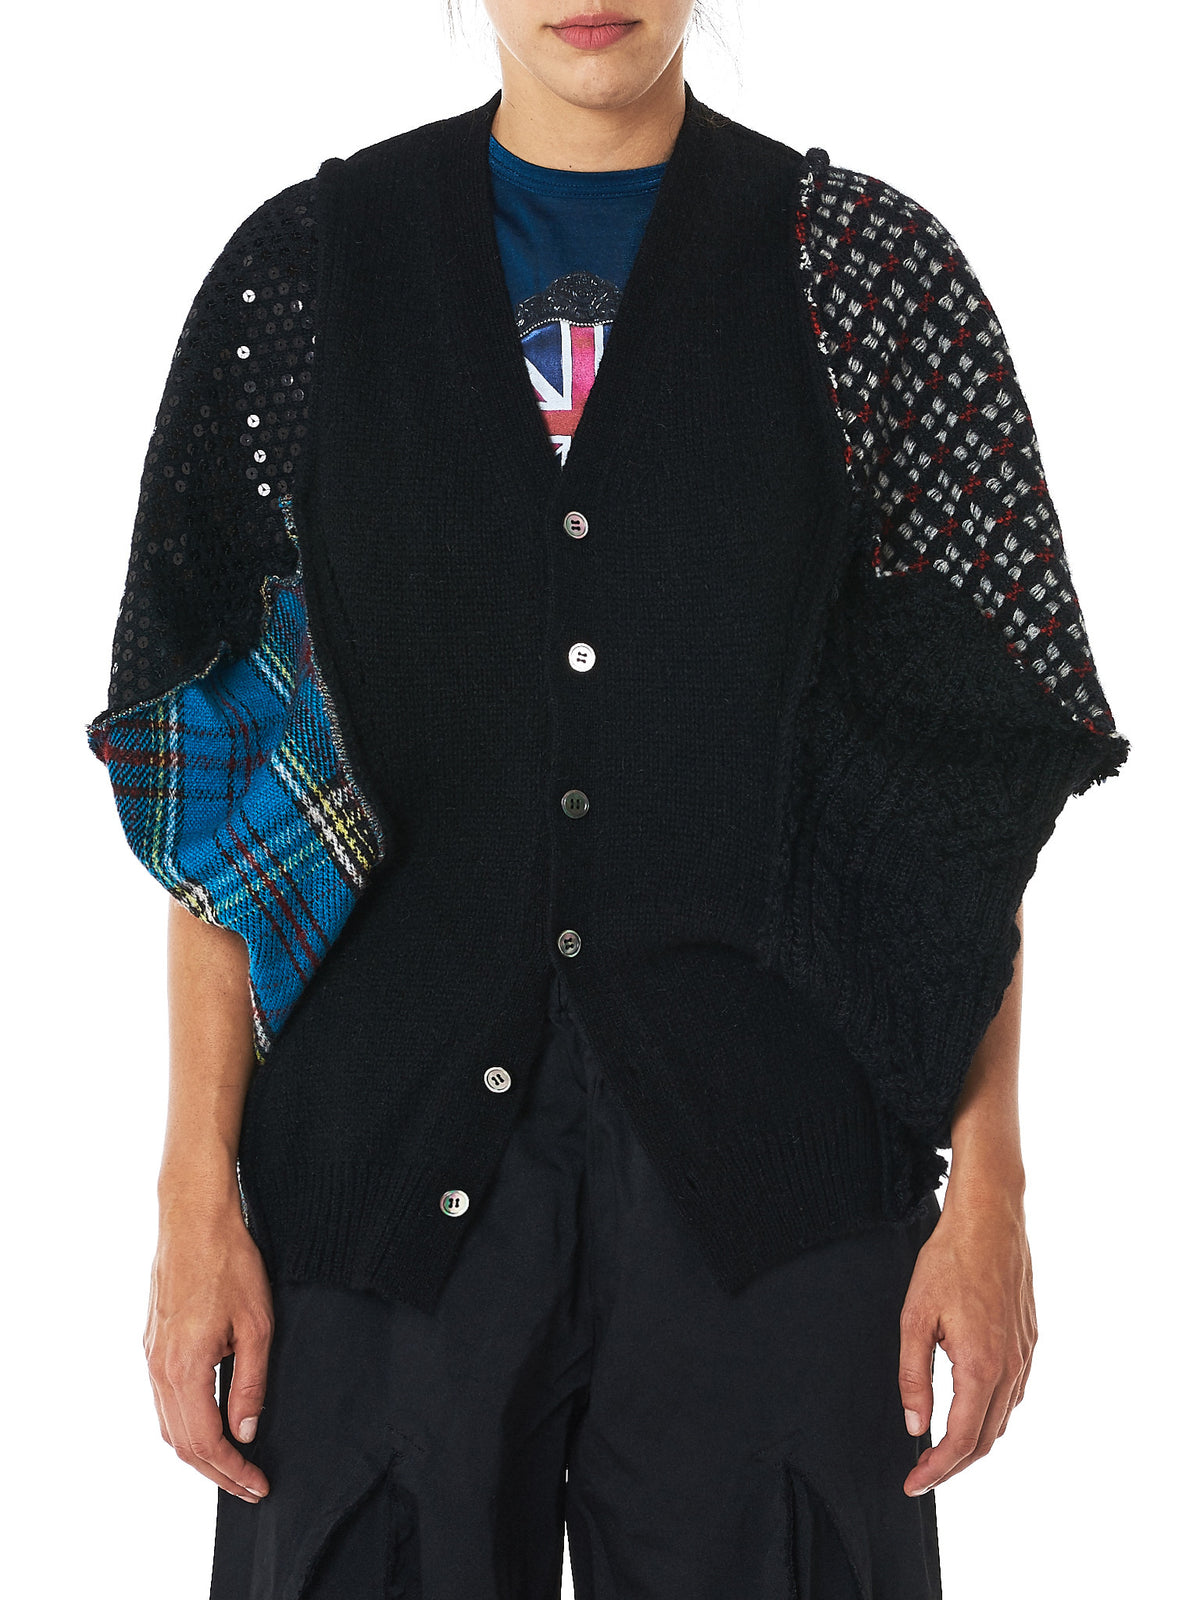 Sequined Assemblage Cardigan (JT-N010-051-1)